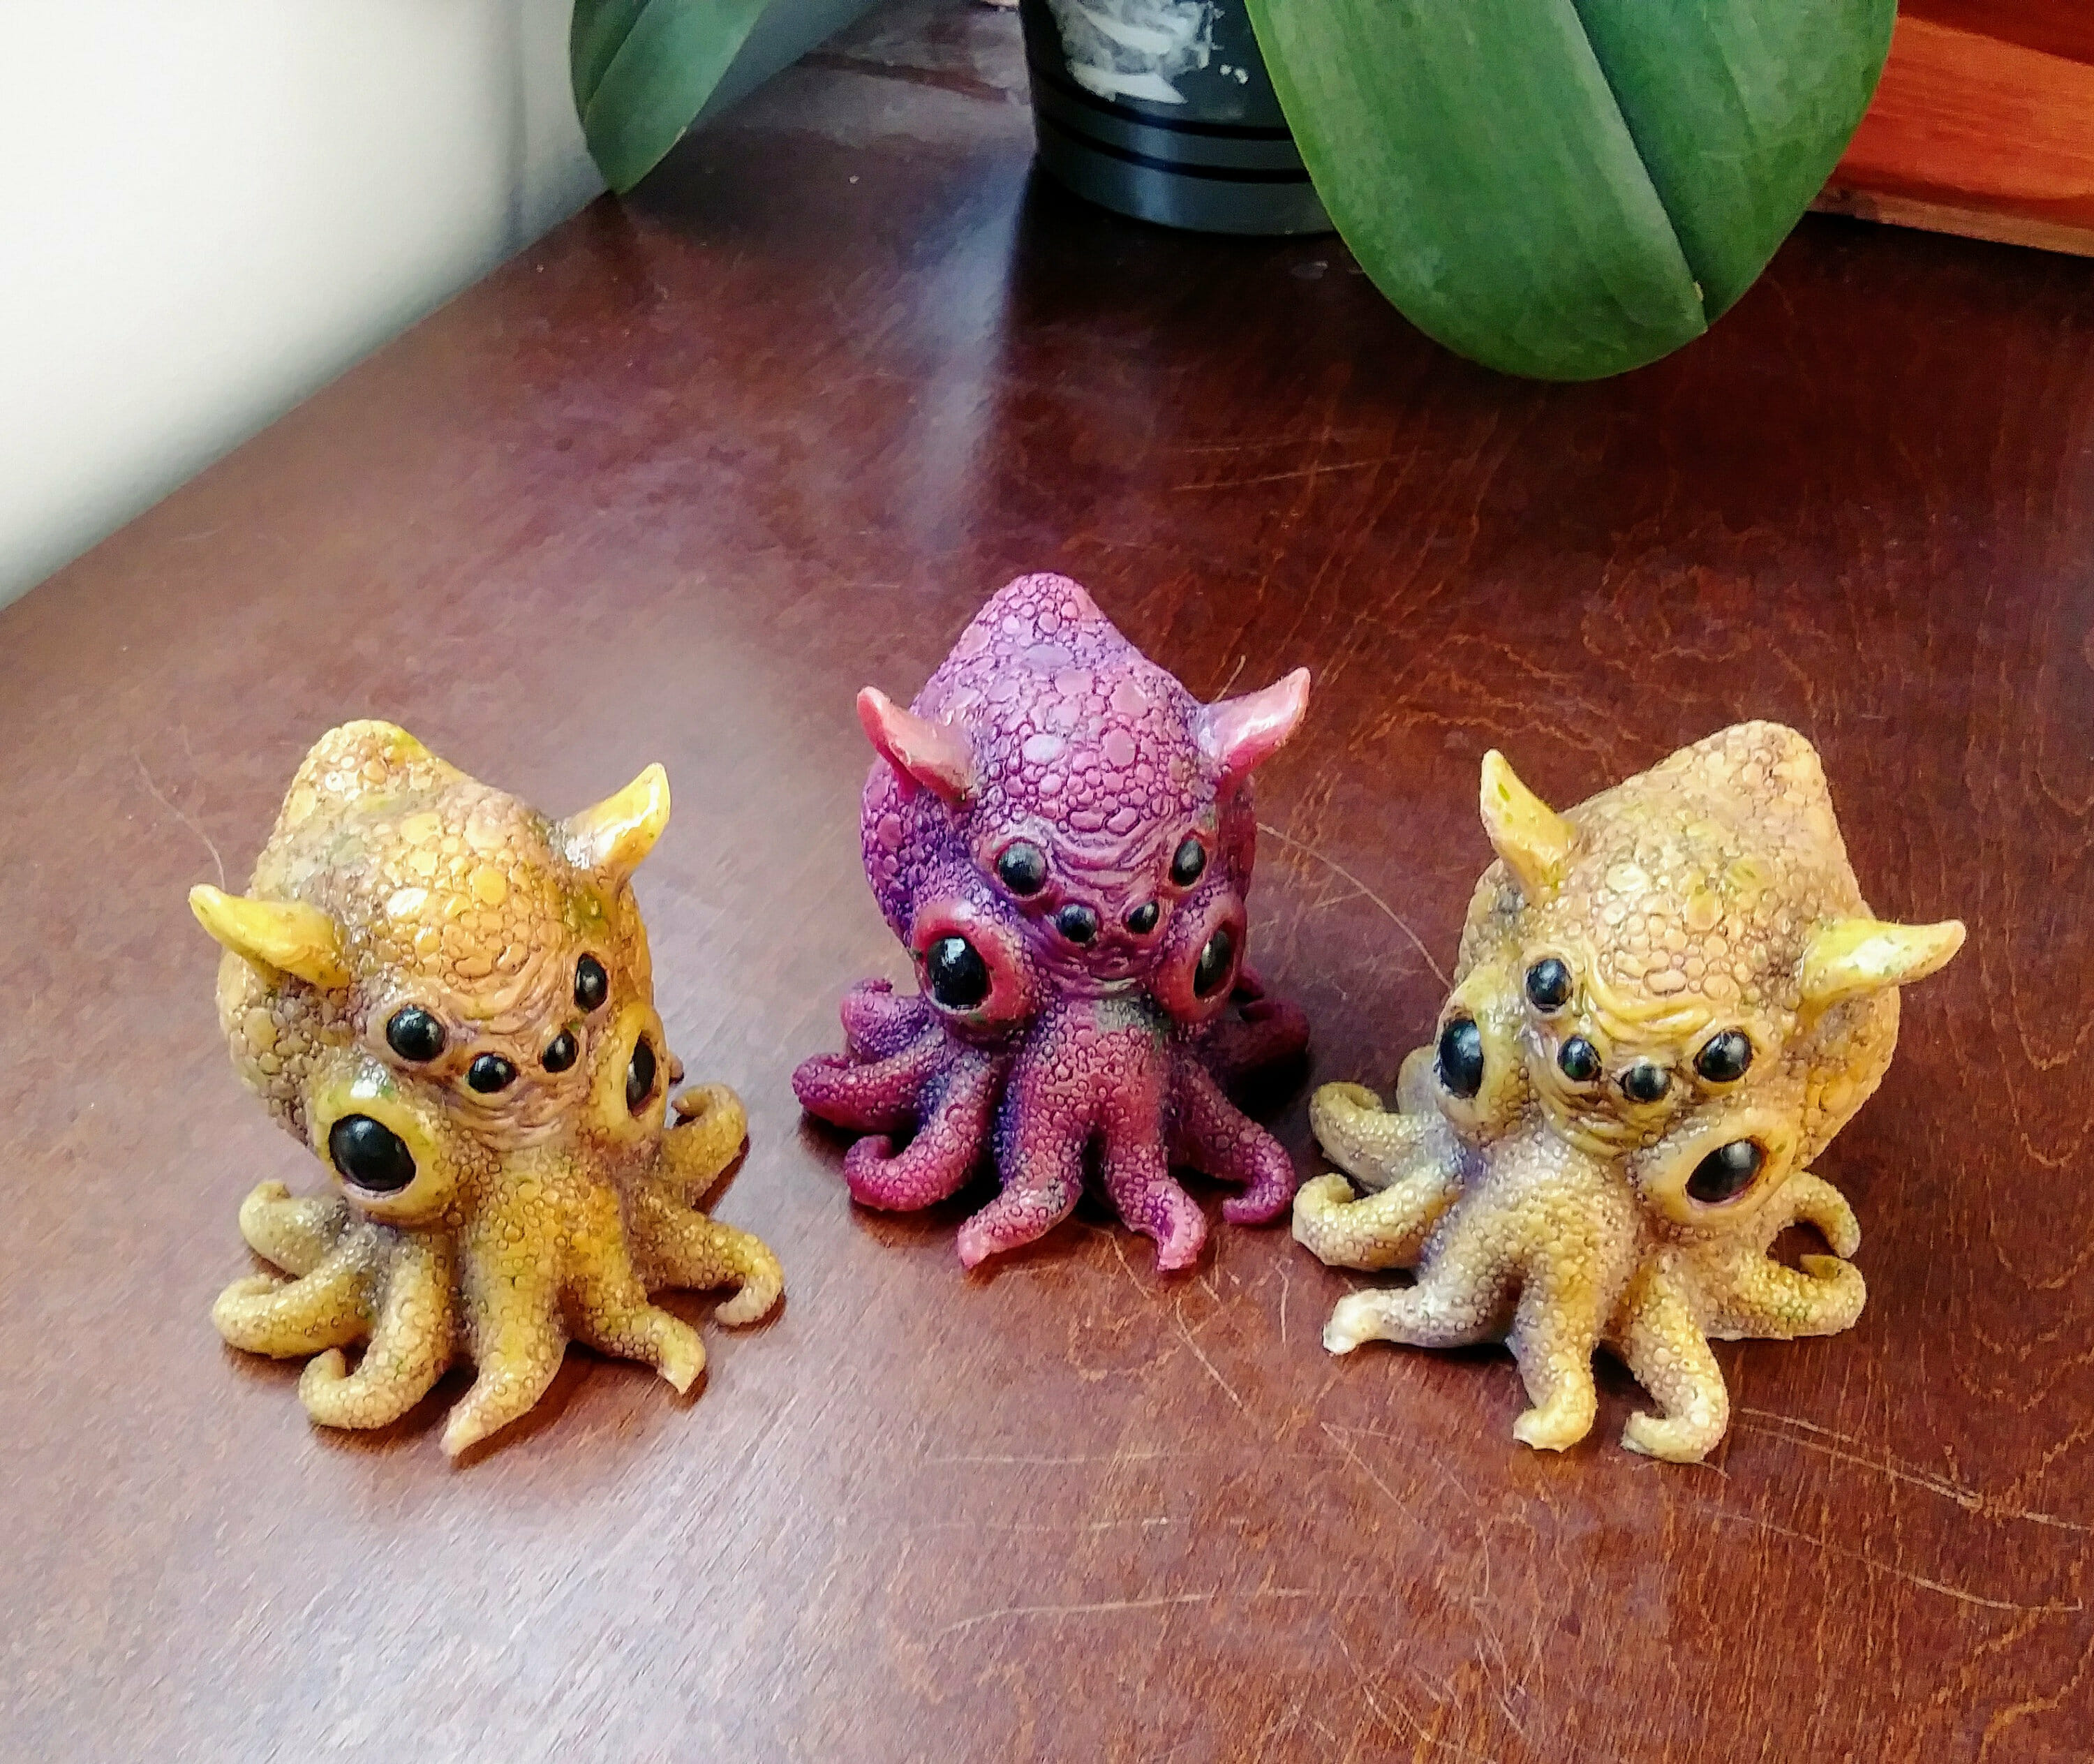 Cutest Cthulhu dumbo octopods